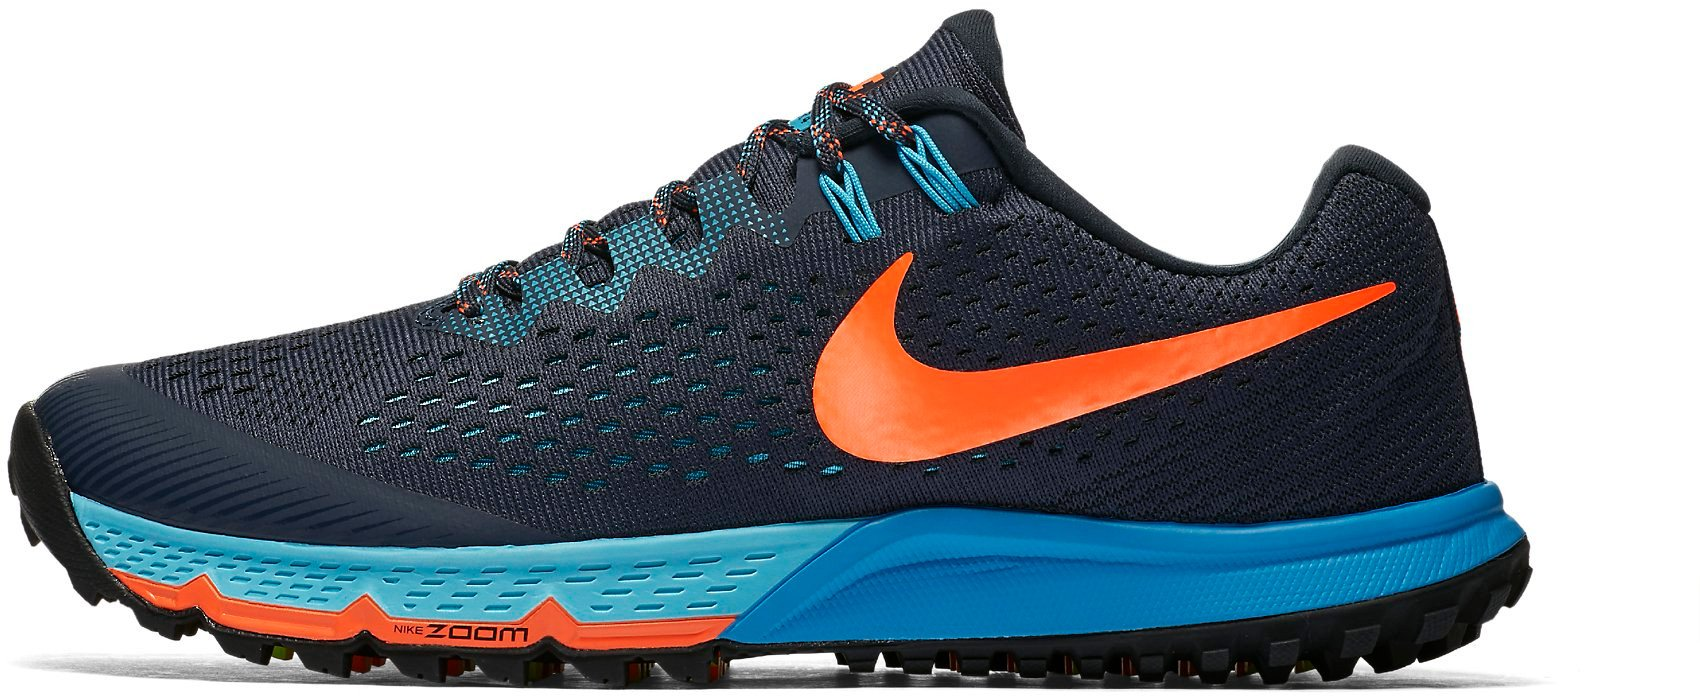 best service 4885d edae3 Trail shoes Nike AIR ZOOM TERRA KIGER 4 - Top4Football.com